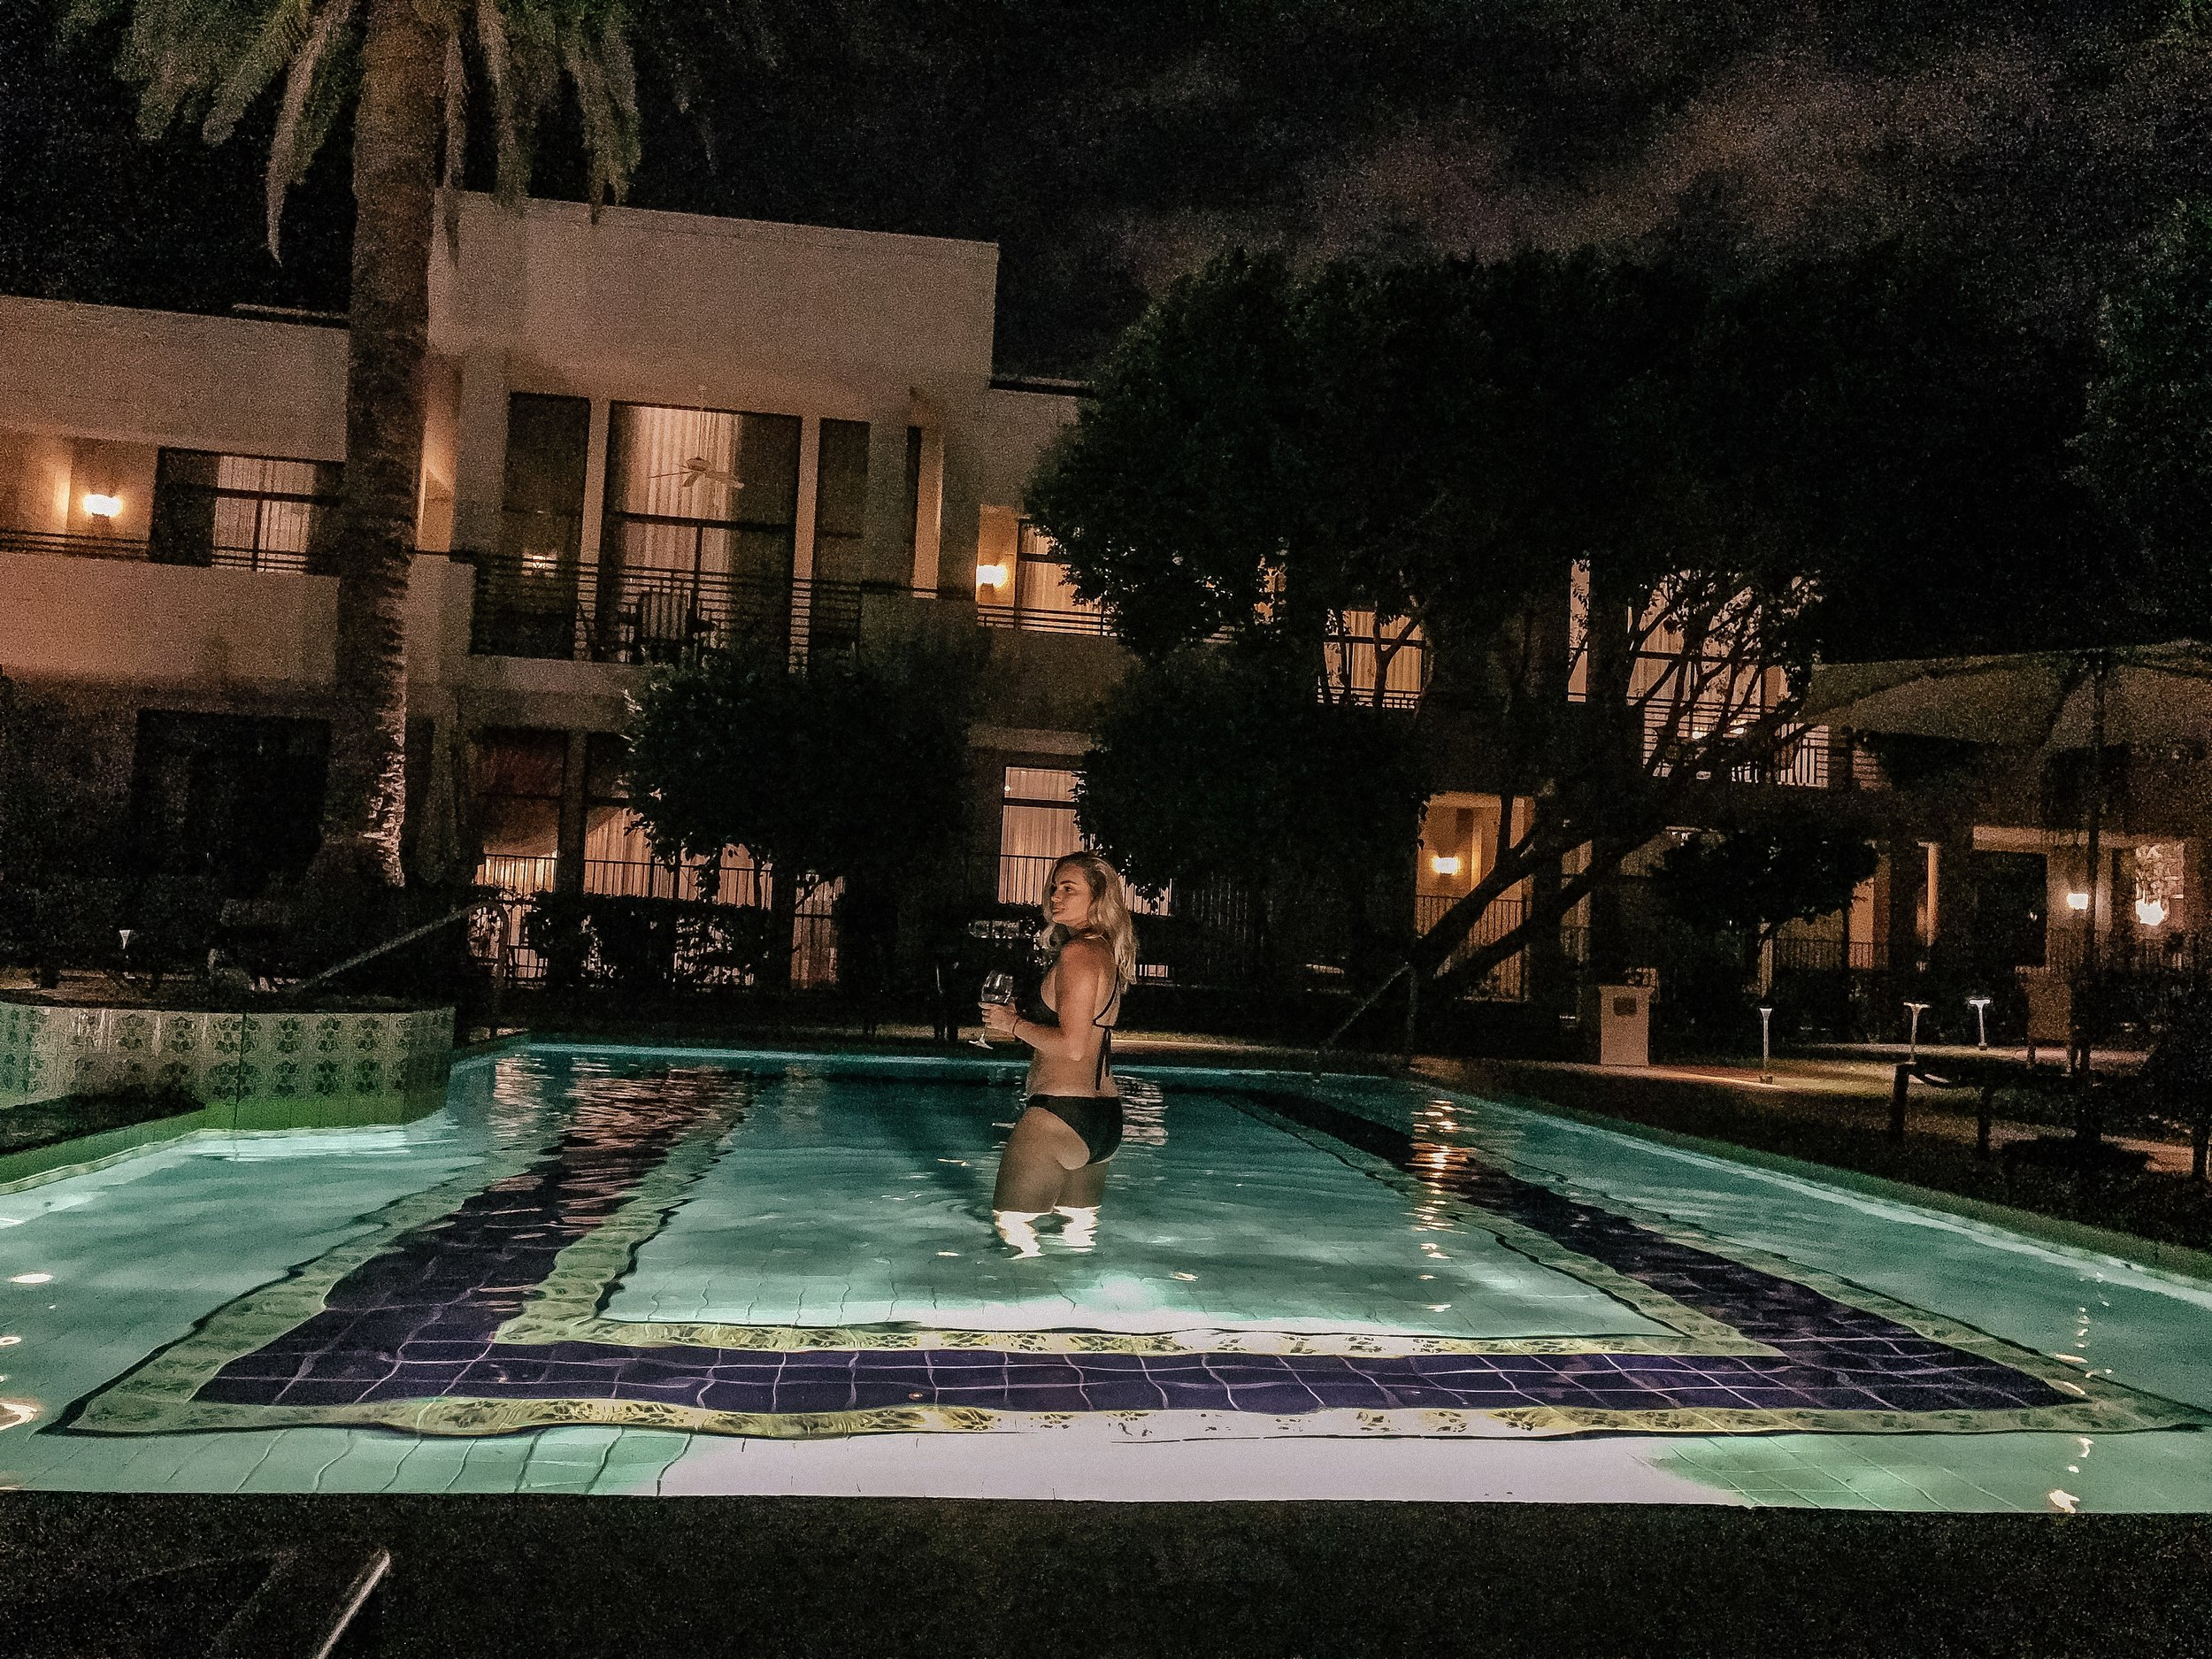 A late night dip in The Catalina Pool